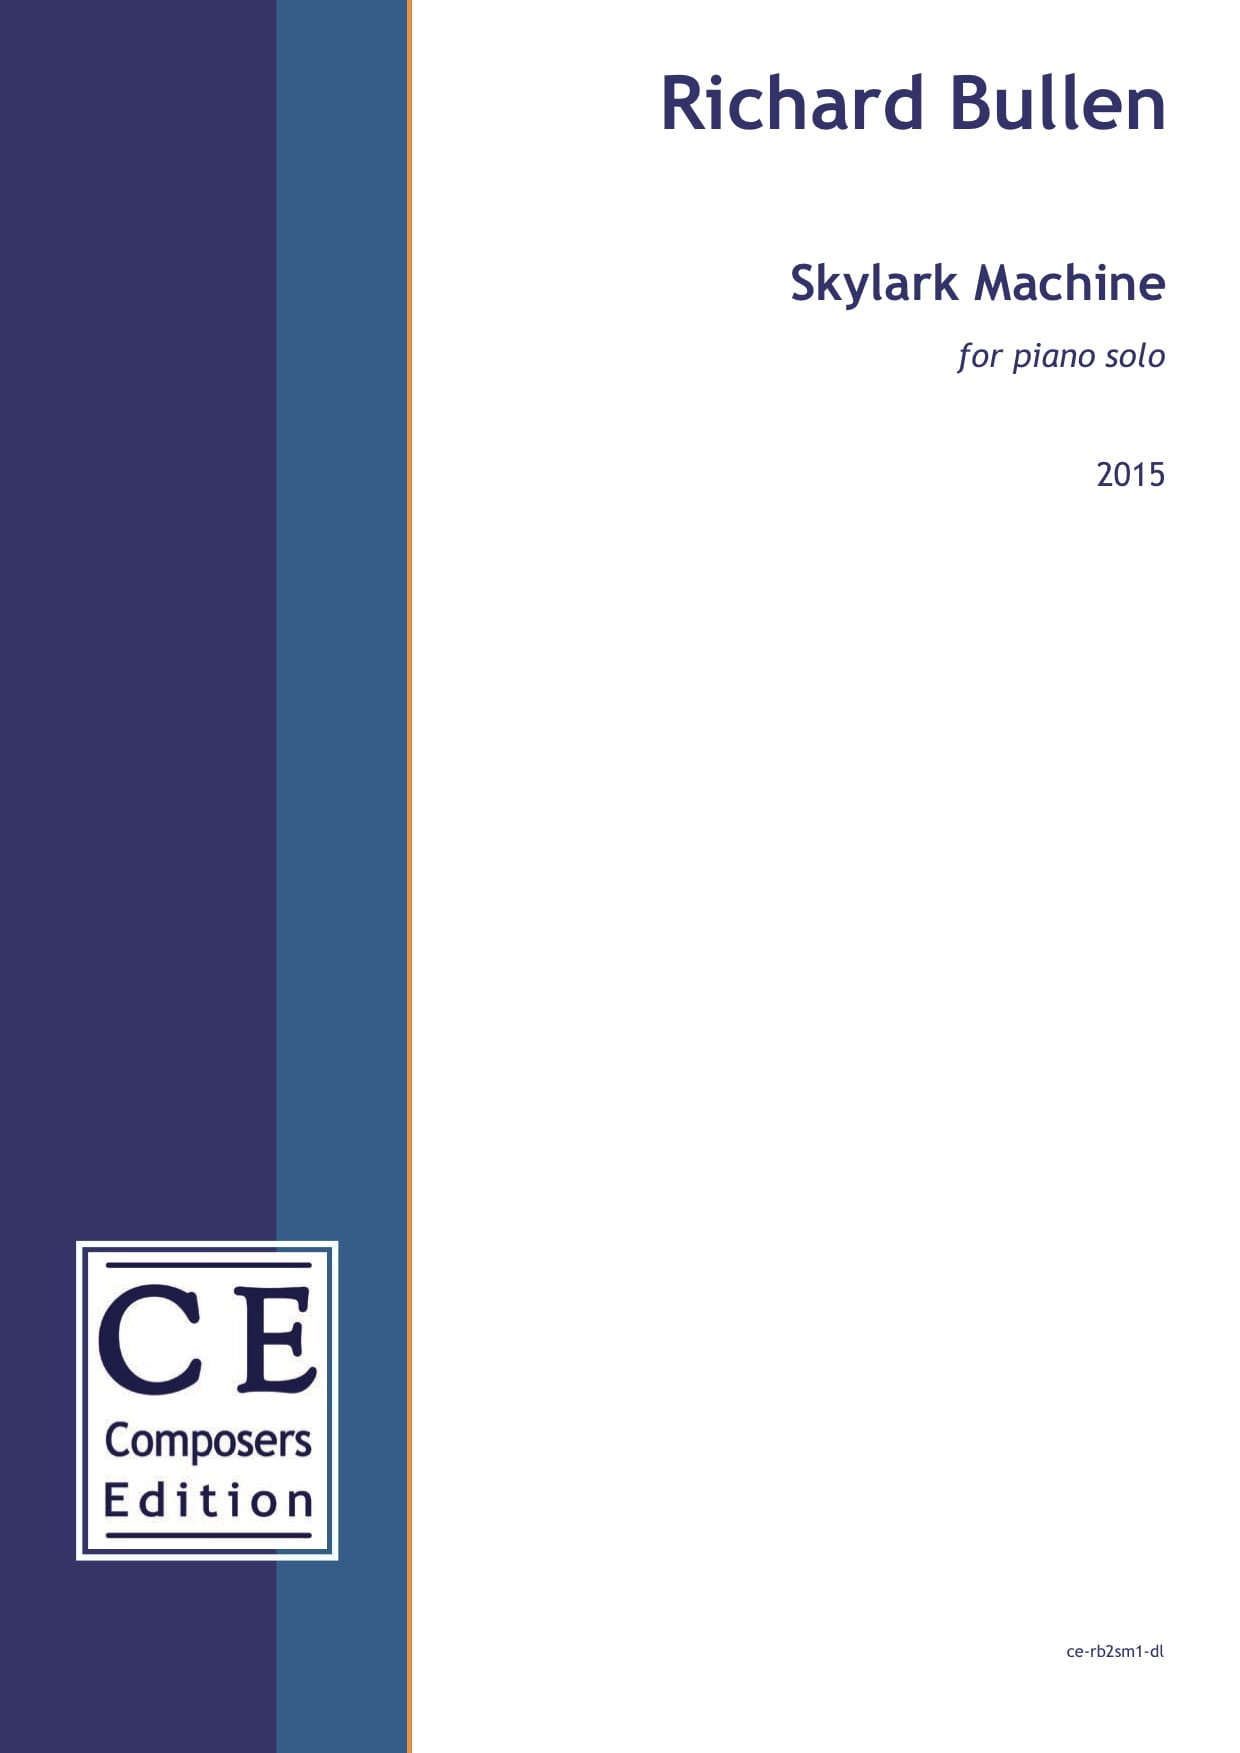 Richard Bullen: Skylark Machine for piano solo